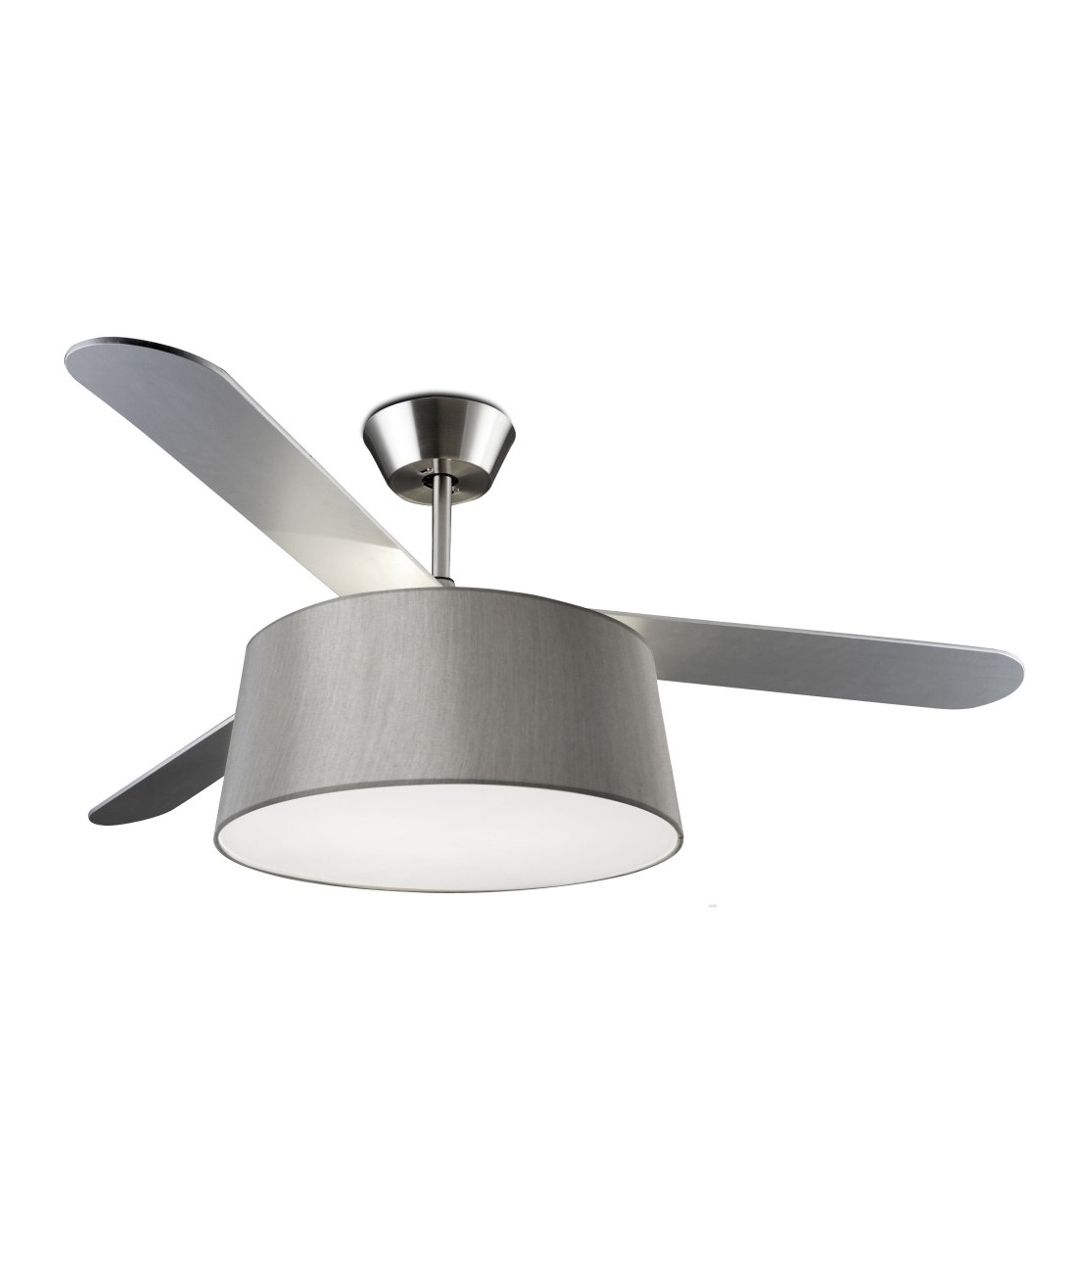 Modern Ceiling Fan With Drum Light Shade Drum Light Modern Ceiling Fan Ceiling Lights Uk